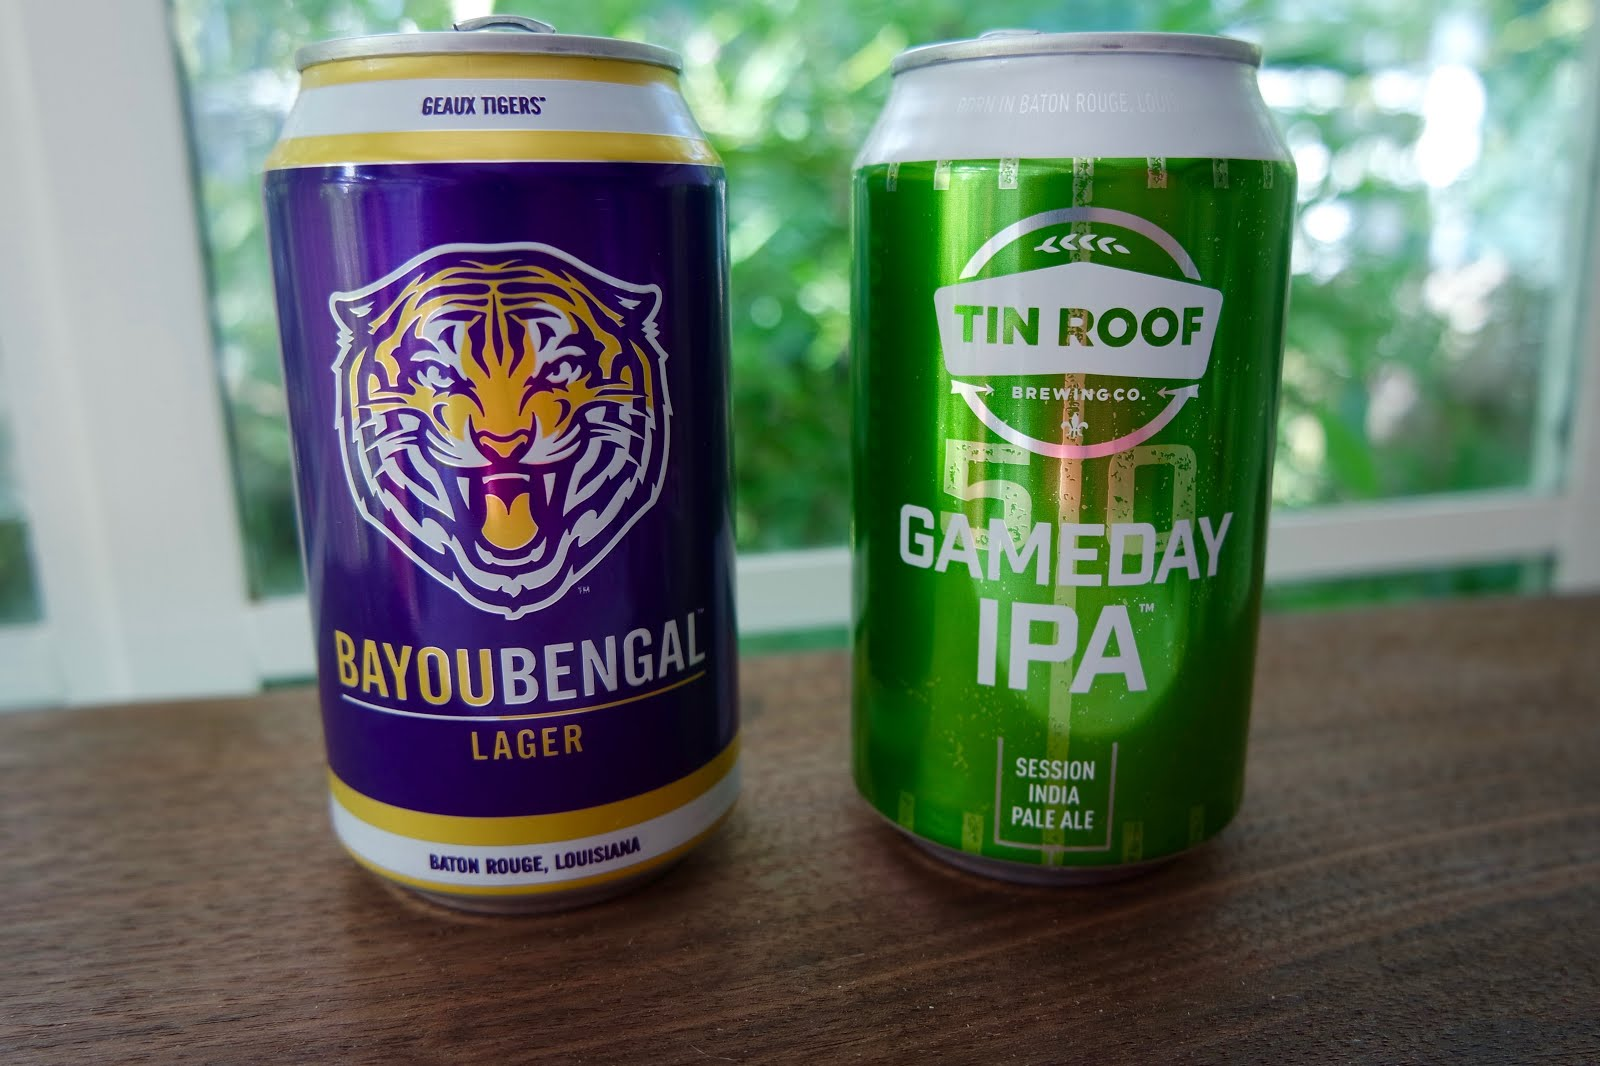 Two Great Tin Roof Tailgating Beers: The Bayou Bengal Lager And Gameday IPA